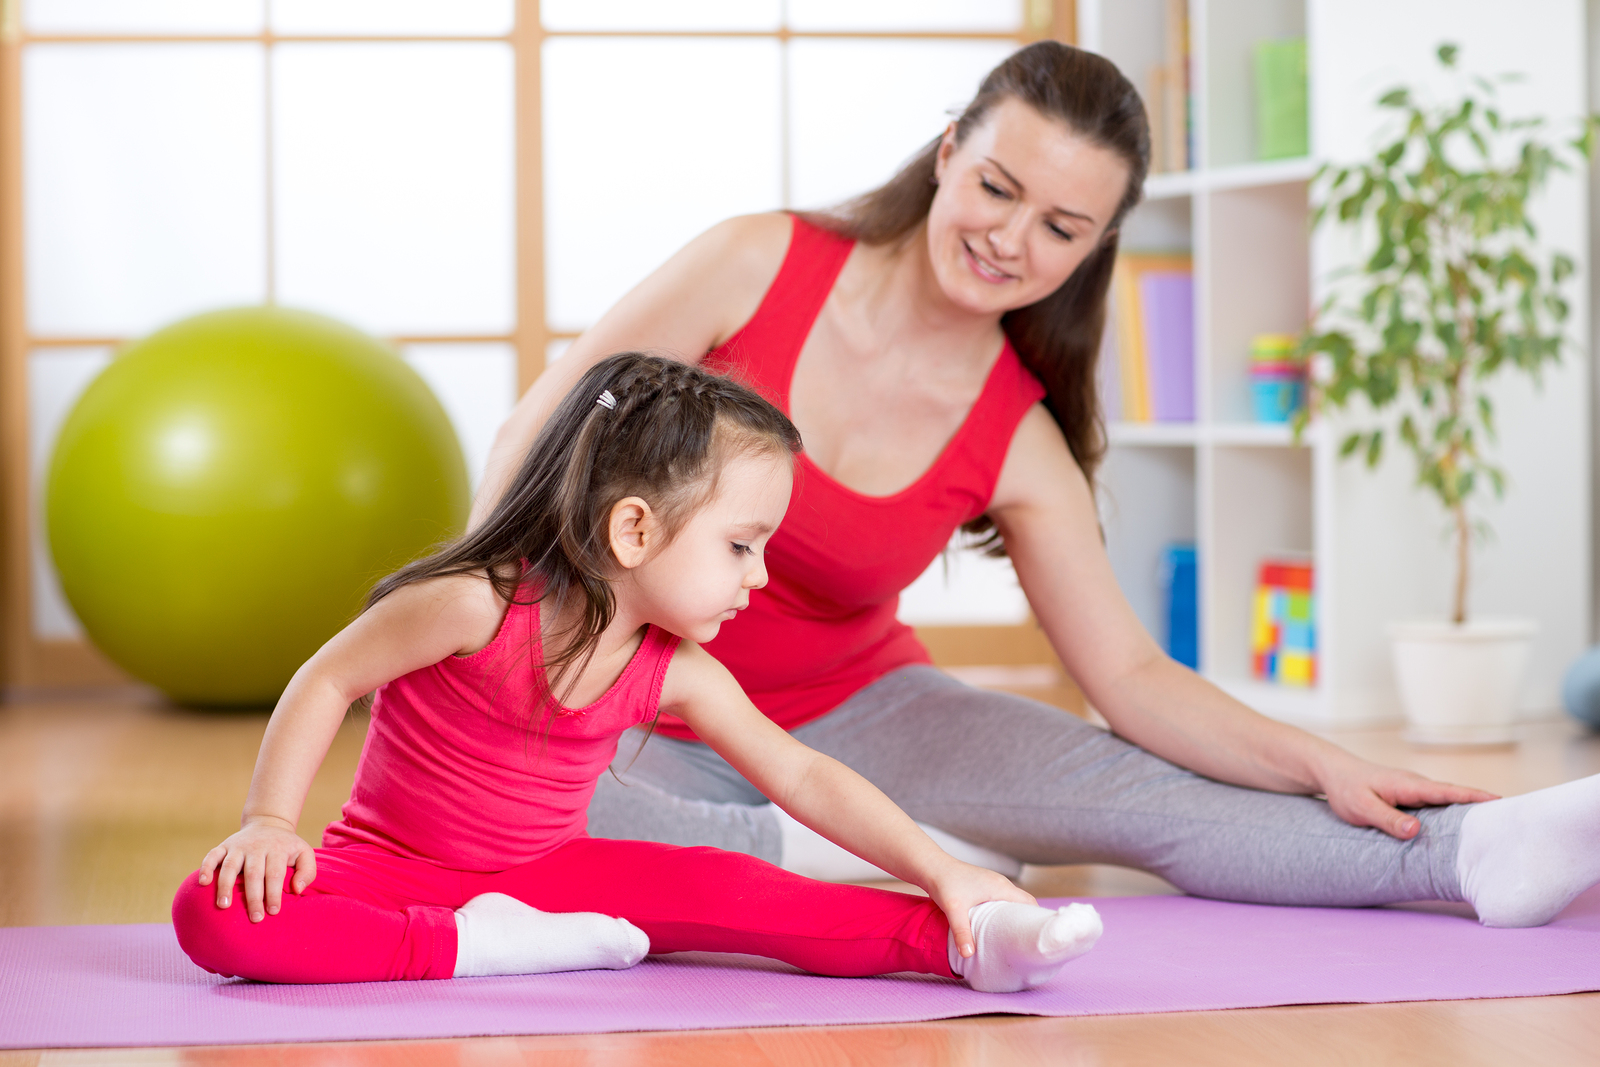 5 Resources to Help Your Child Practice Yoga